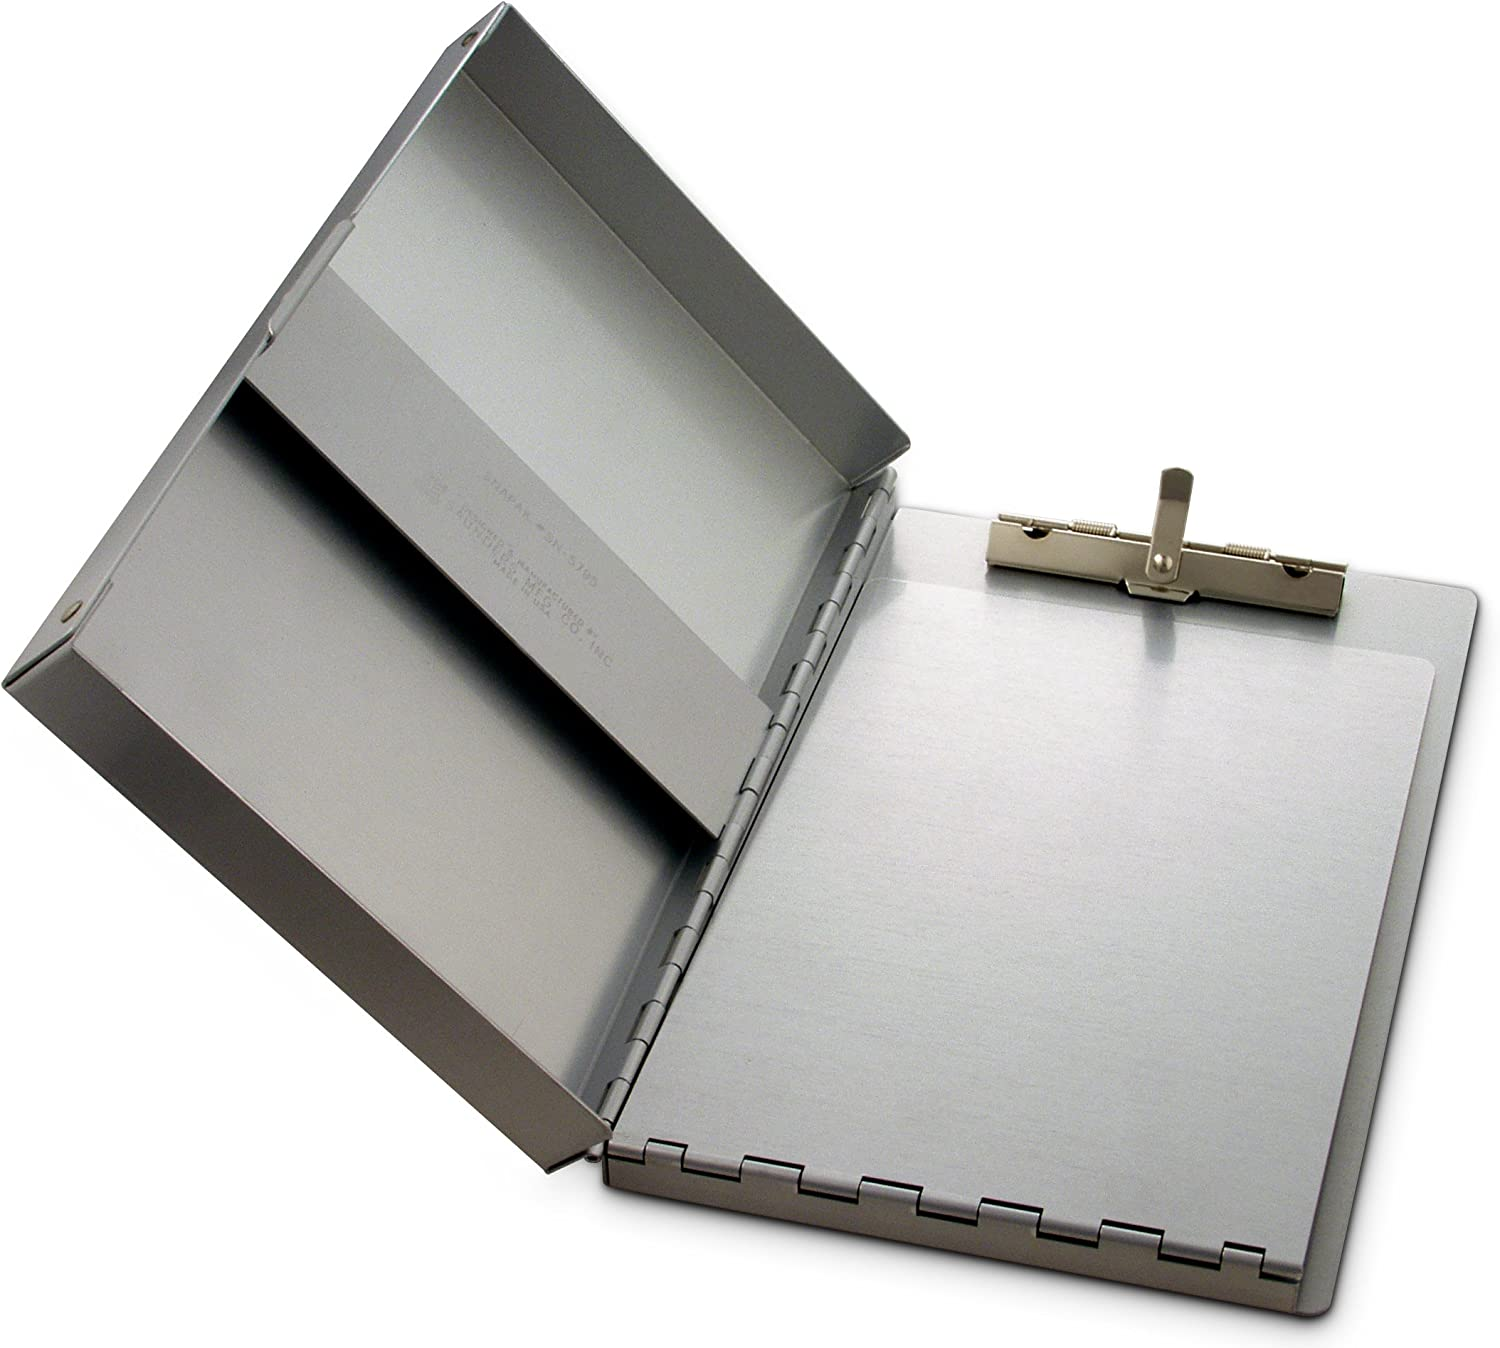 Saunders Recycled Aluminum Snapak Form Holder, Memo Size, Fits Paper Size up to 6 x 10 inches (10507) : Clipboards : Office Products